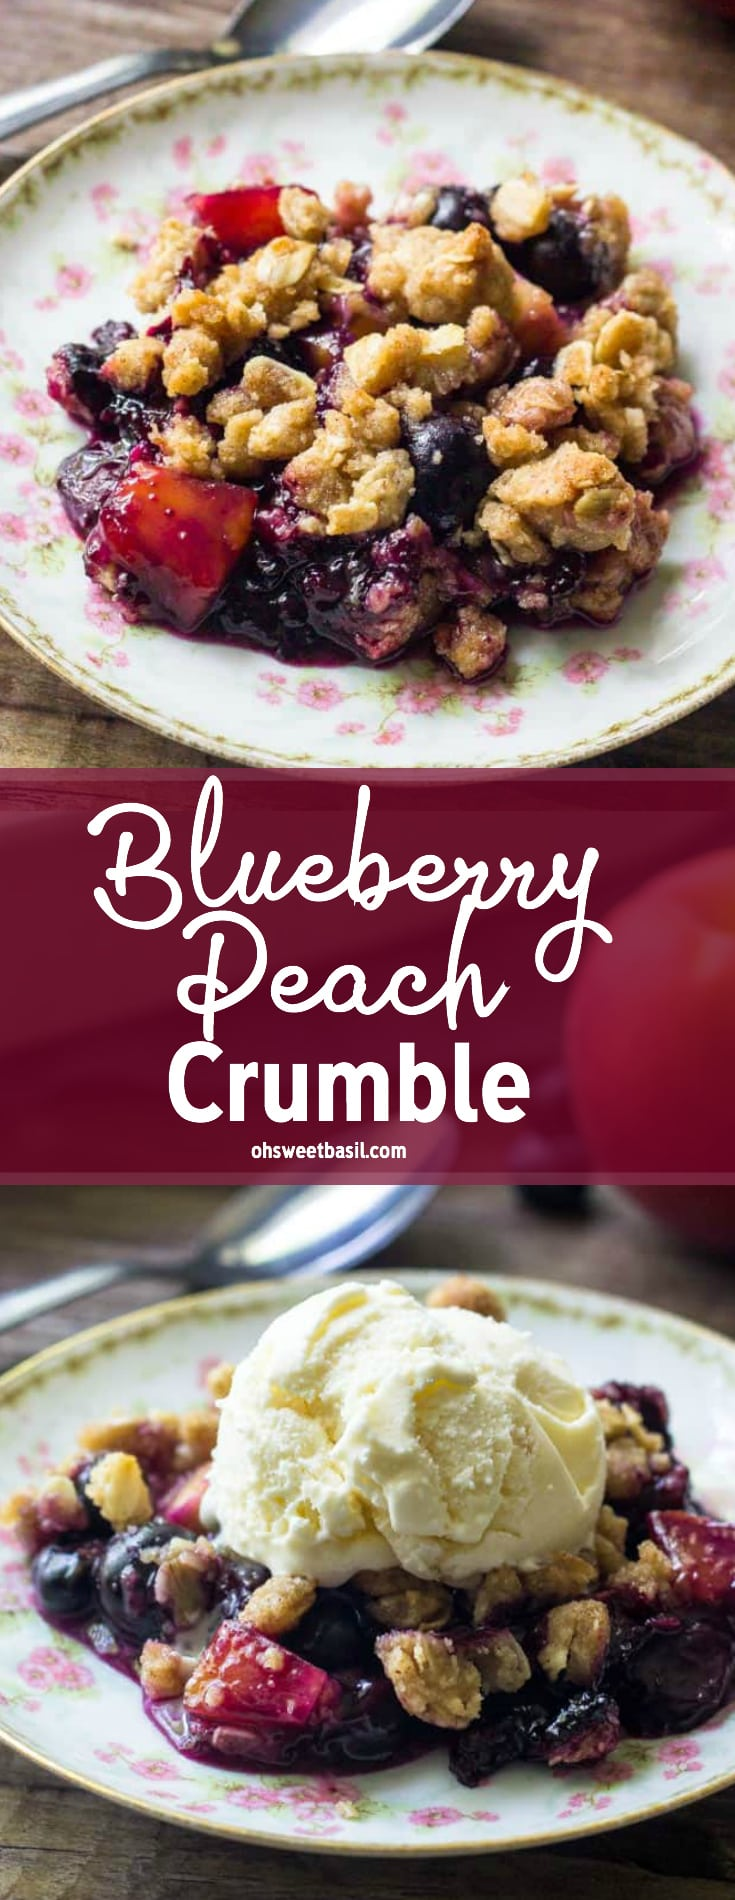 A plate of blueberry peach crumble with juicy berries & oatmeal crumble topping